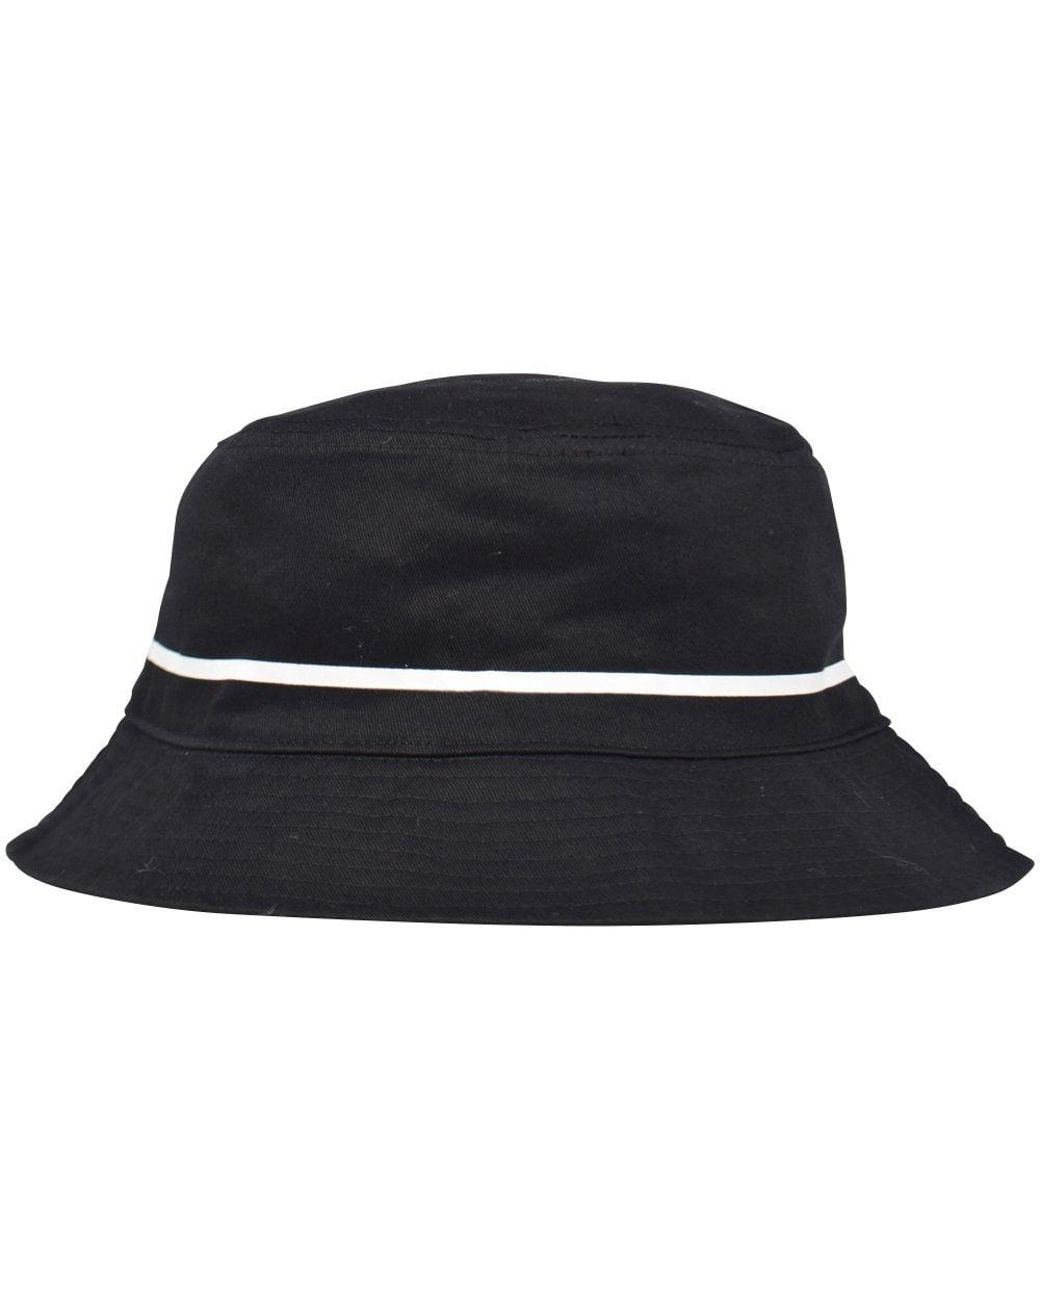 85f82d7e1ca5a3 Kappa Black/white Authentic Bucket Hat in Black for Men - Lyst